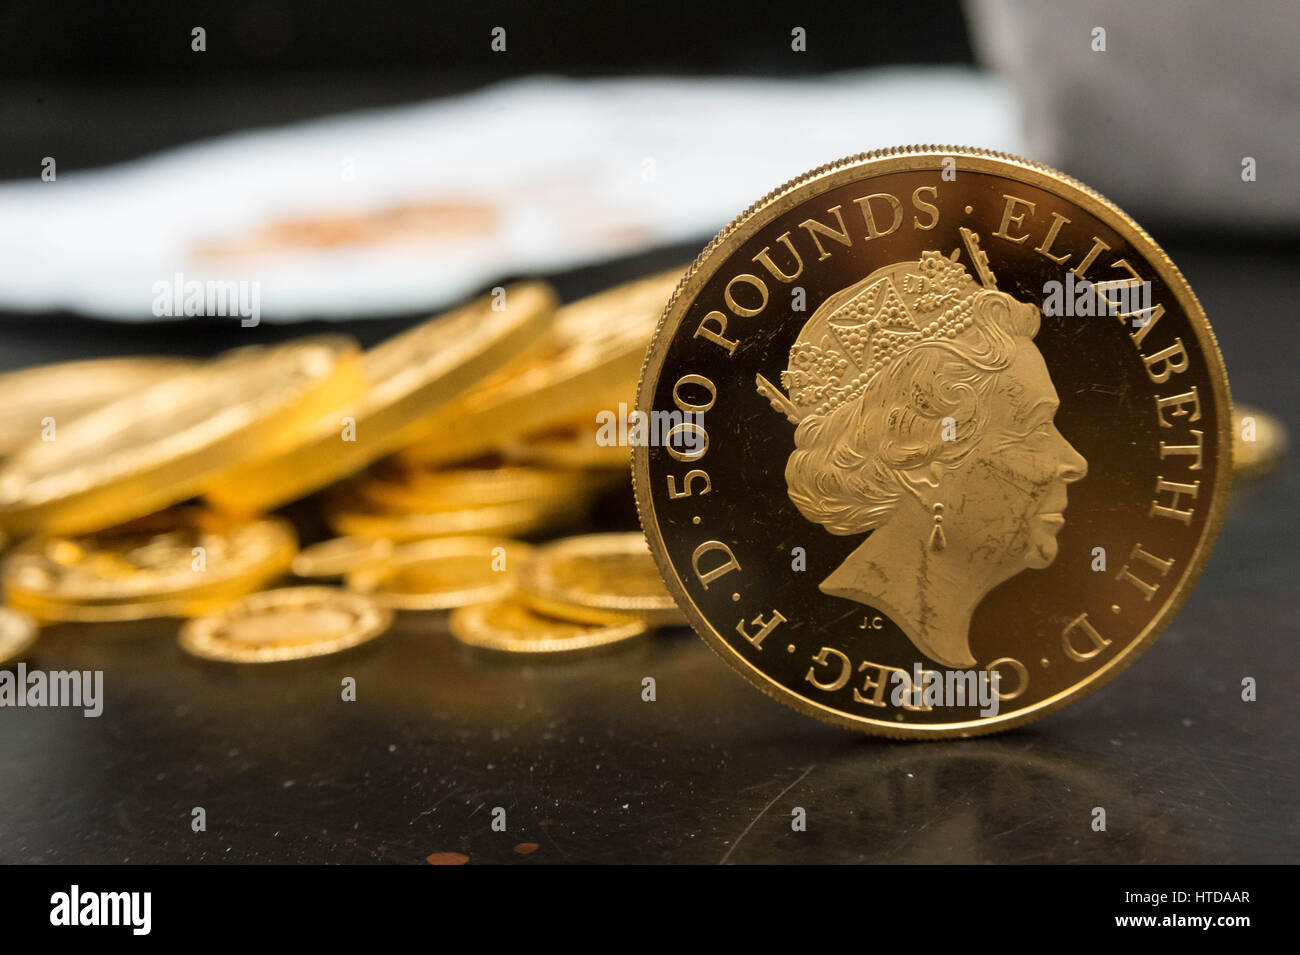 London, UK. 9th Mar, 2017. As well as standard 20p, 50p, £1, and £2 coins, the London Assay office also - Stock Image